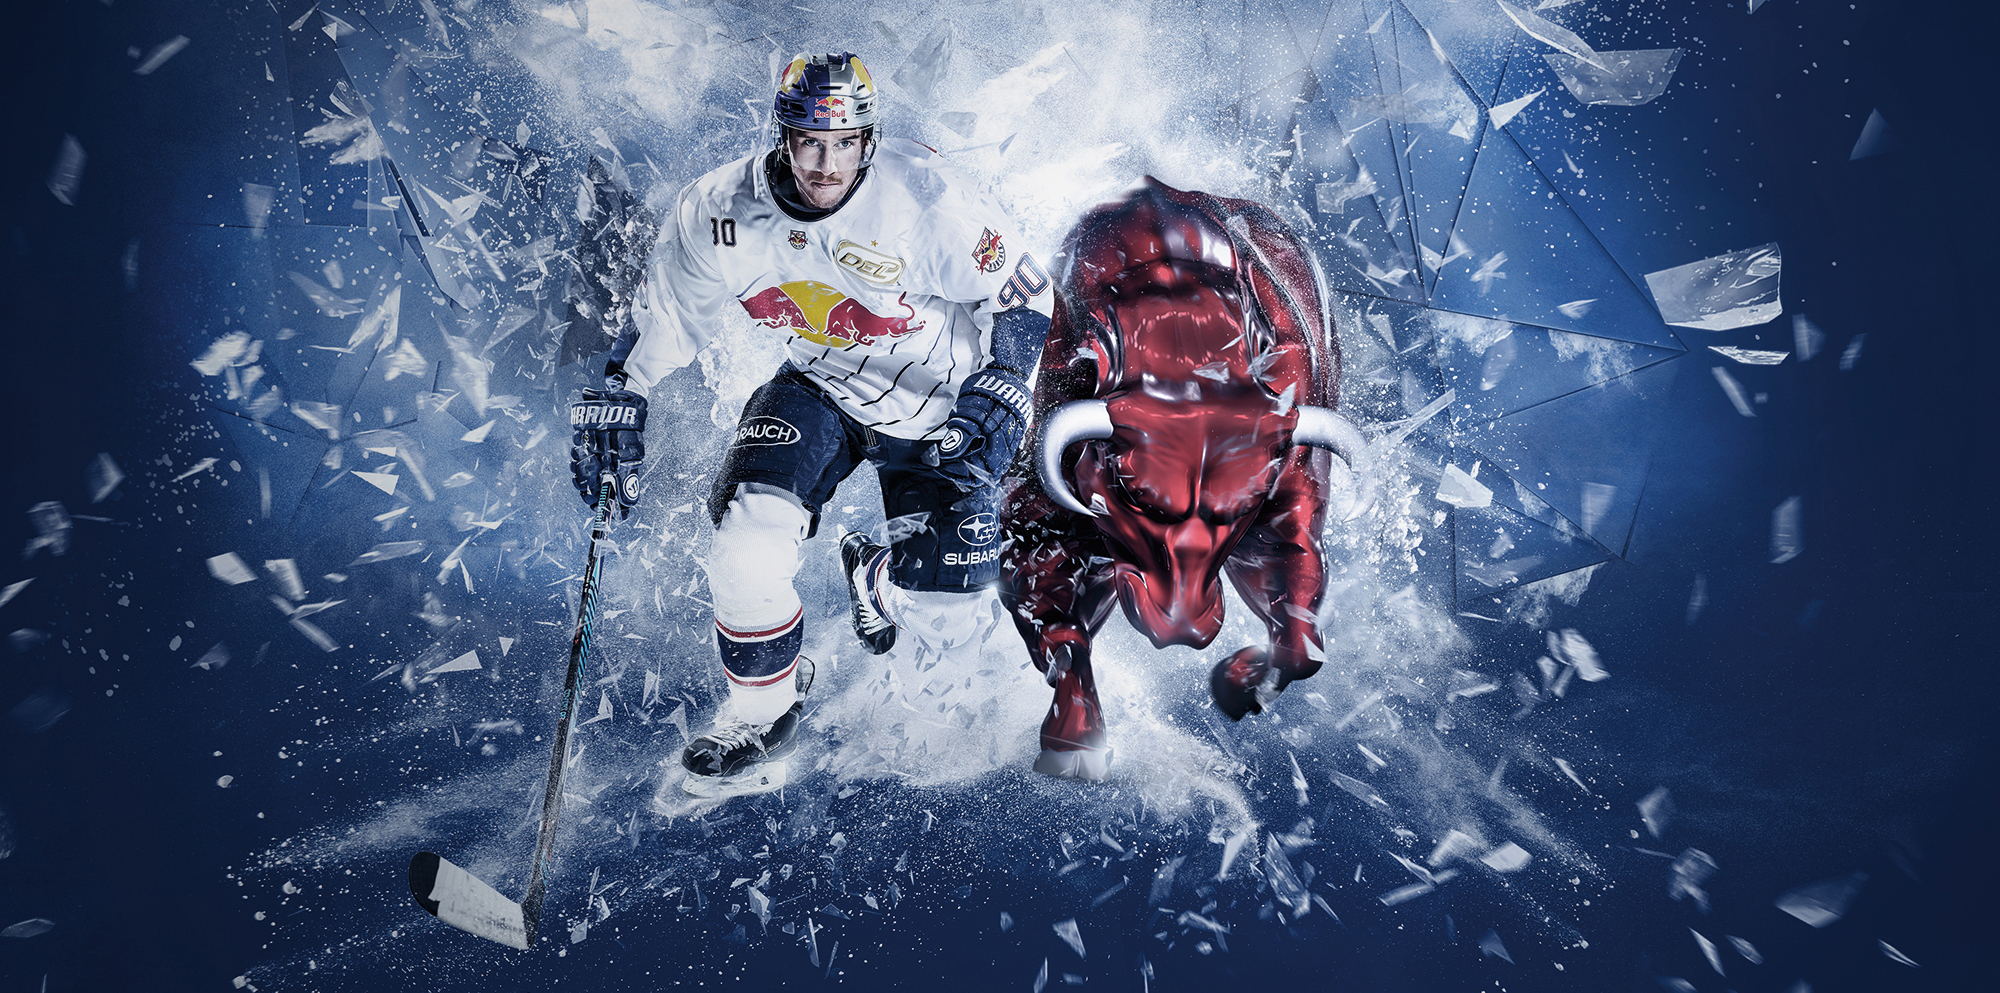 Red Bull works…